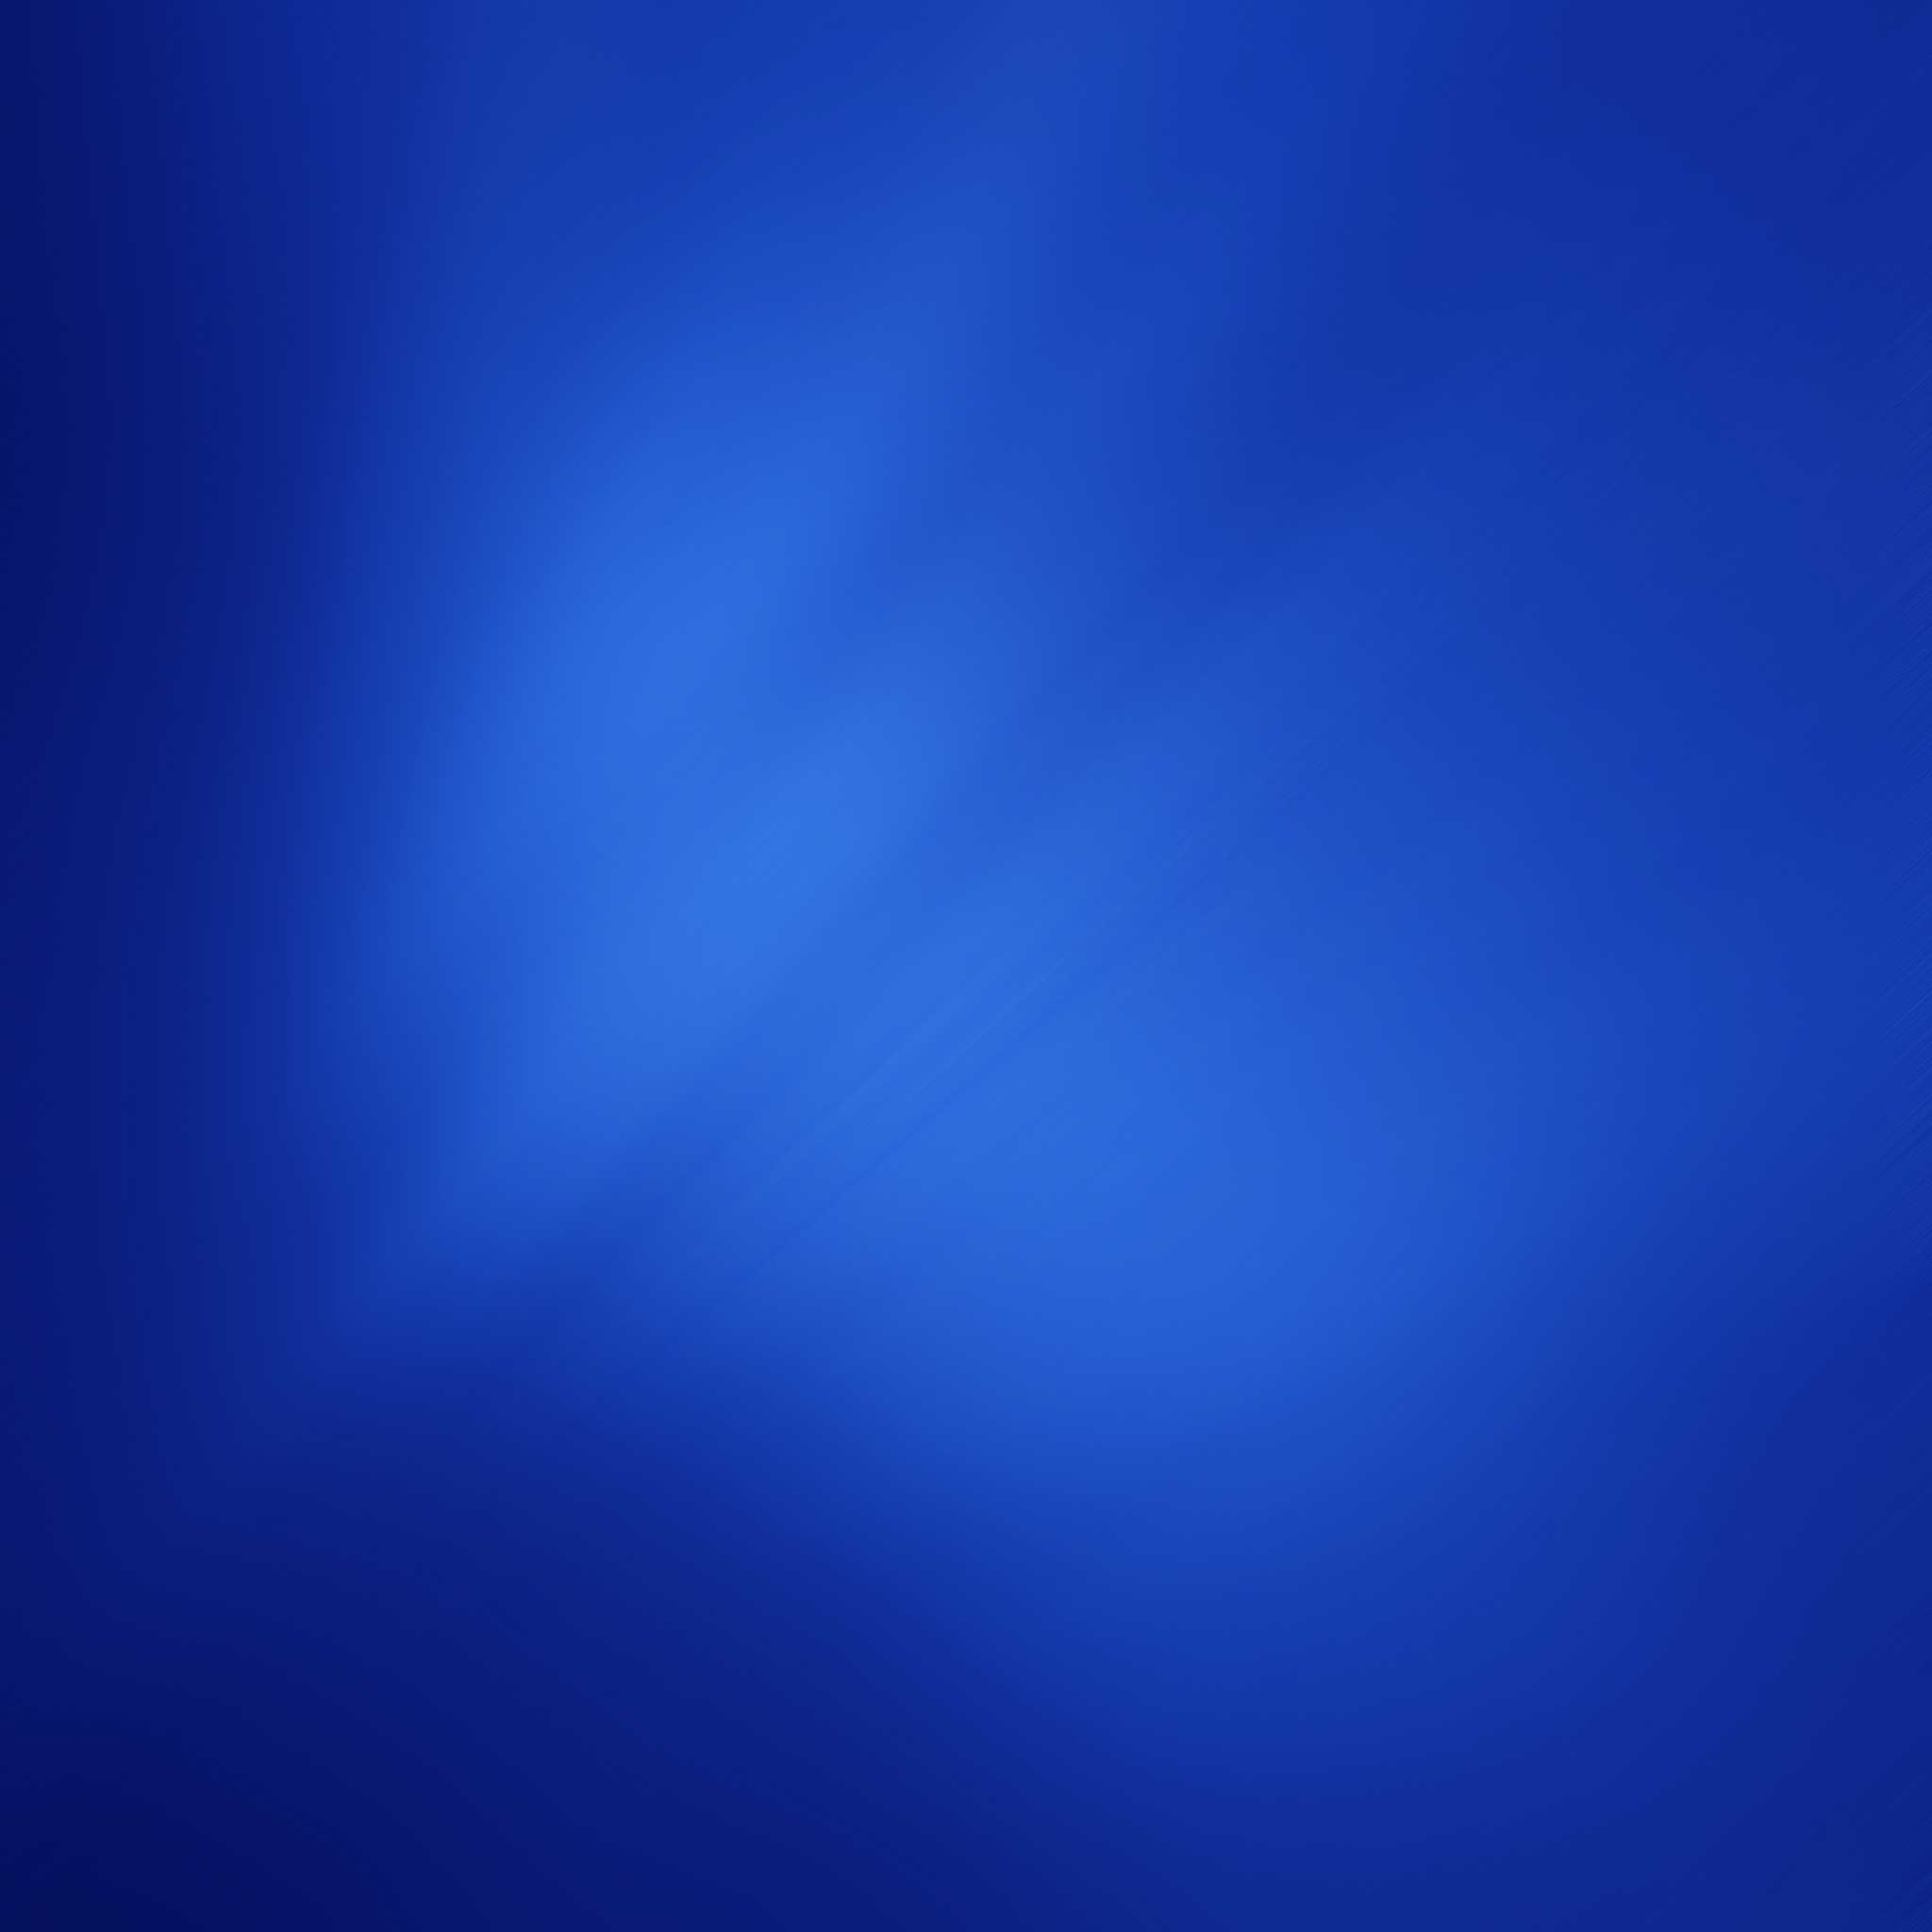 Deep Blue Backgrounds 2048x2048